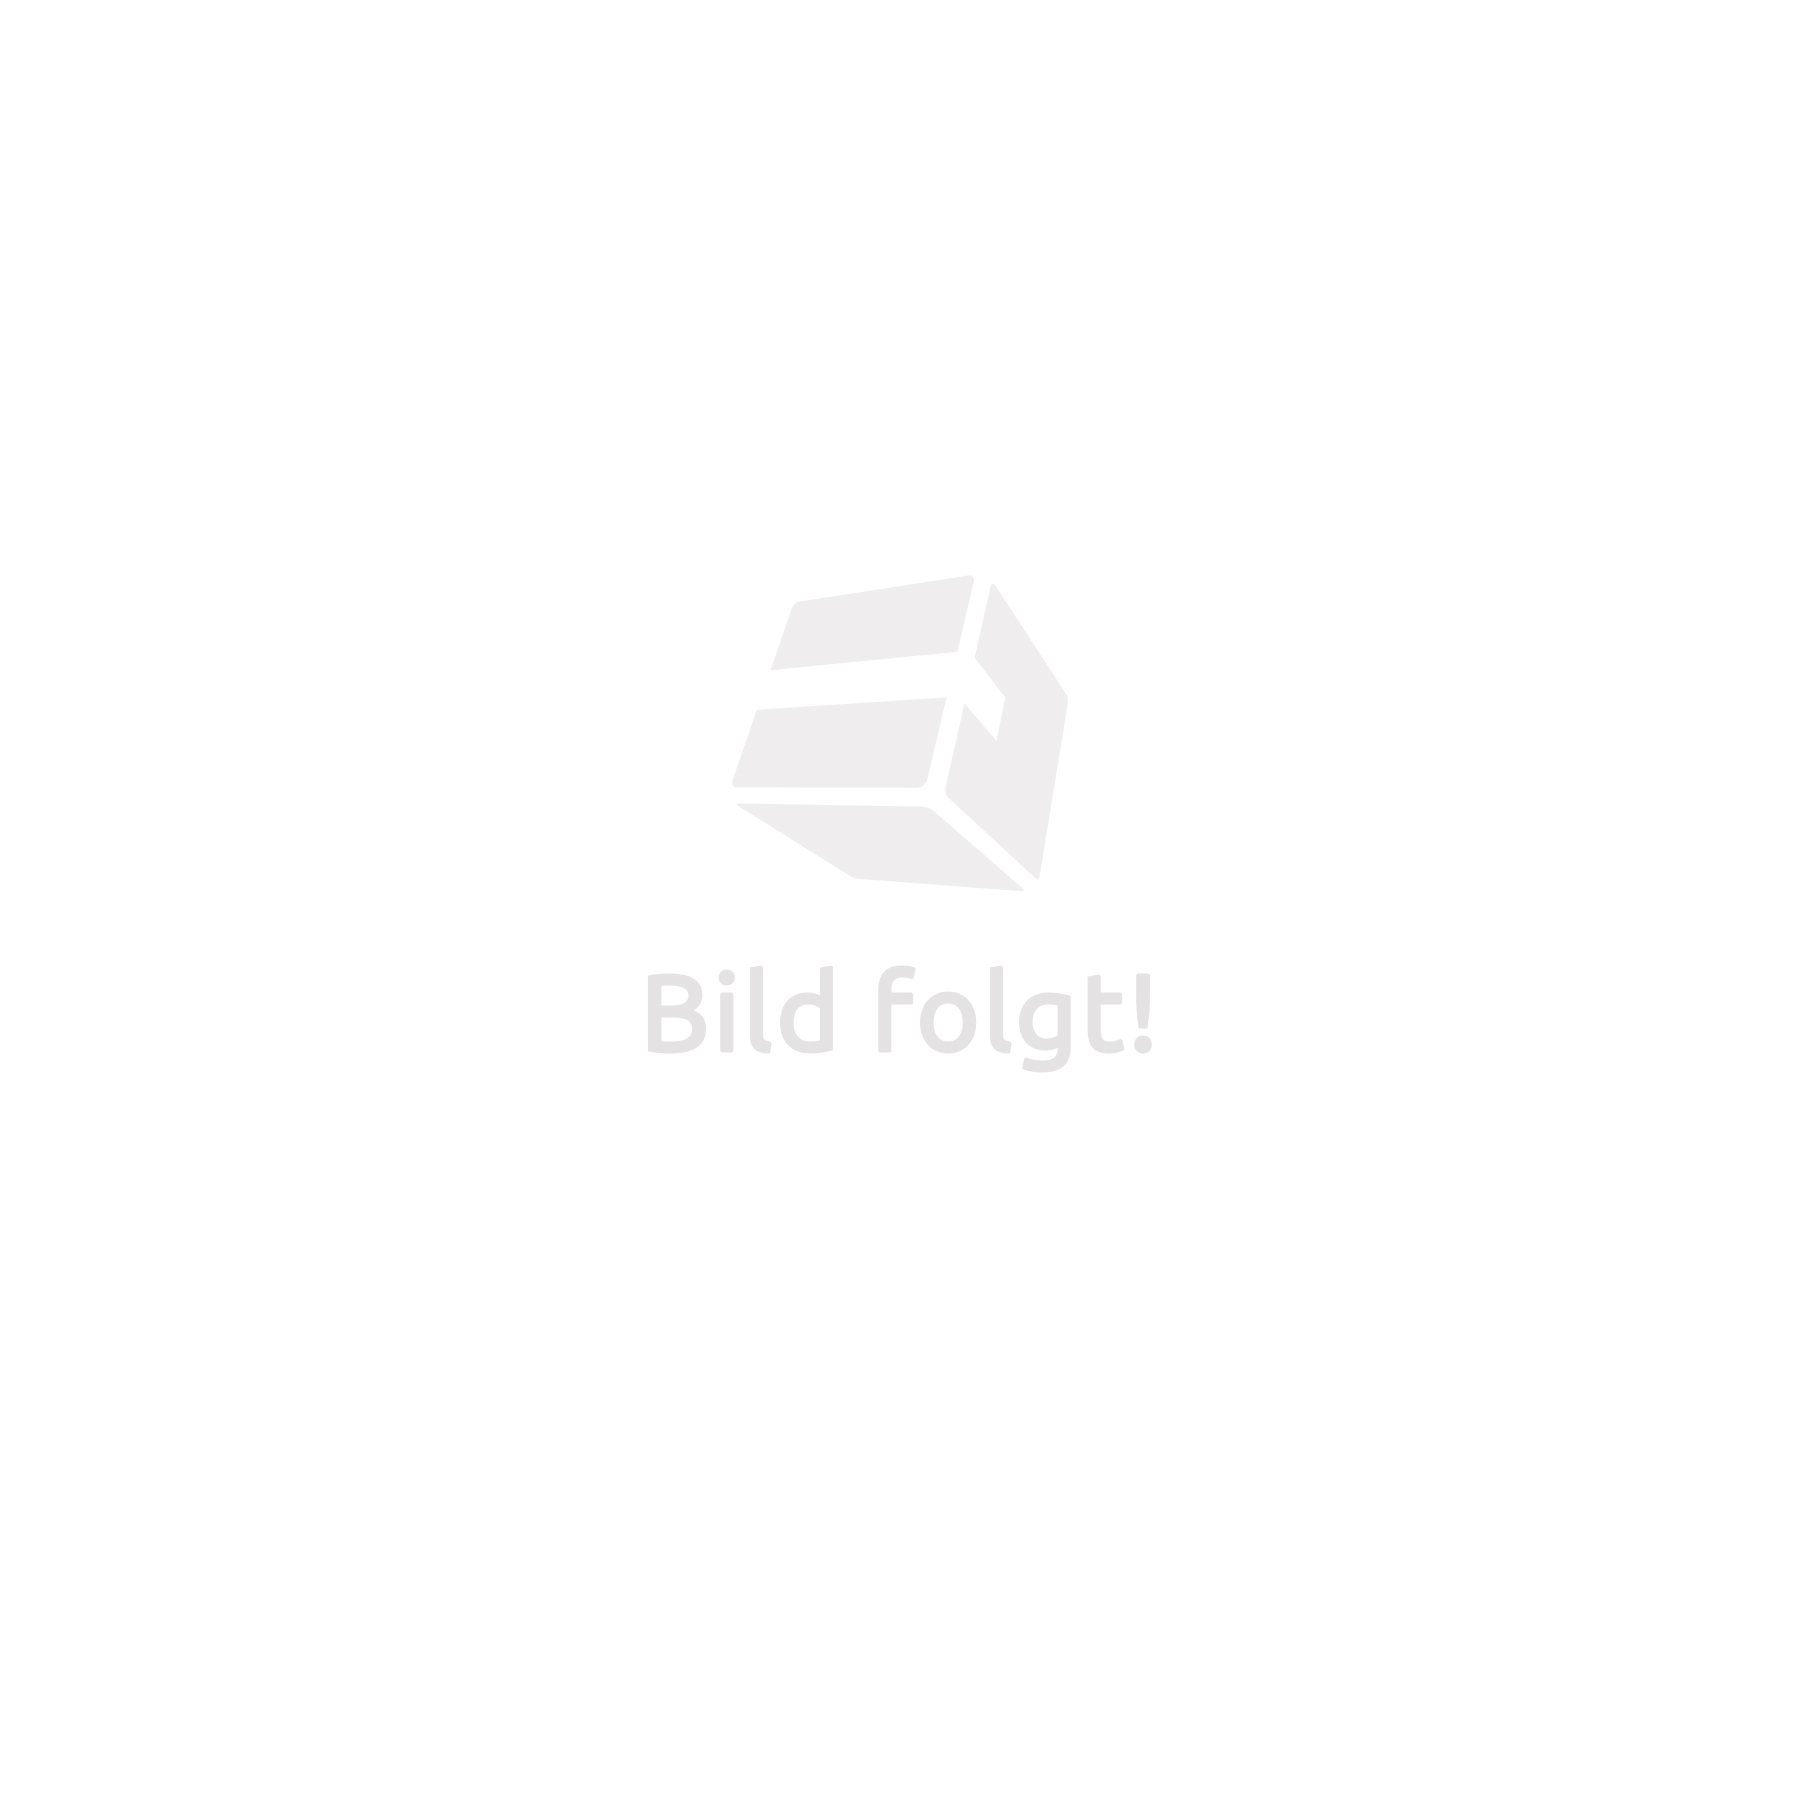 arbre chat griffoir grattoir 4 grottes jouet animaux douillet 214cm gris ebay. Black Bedroom Furniture Sets. Home Design Ideas